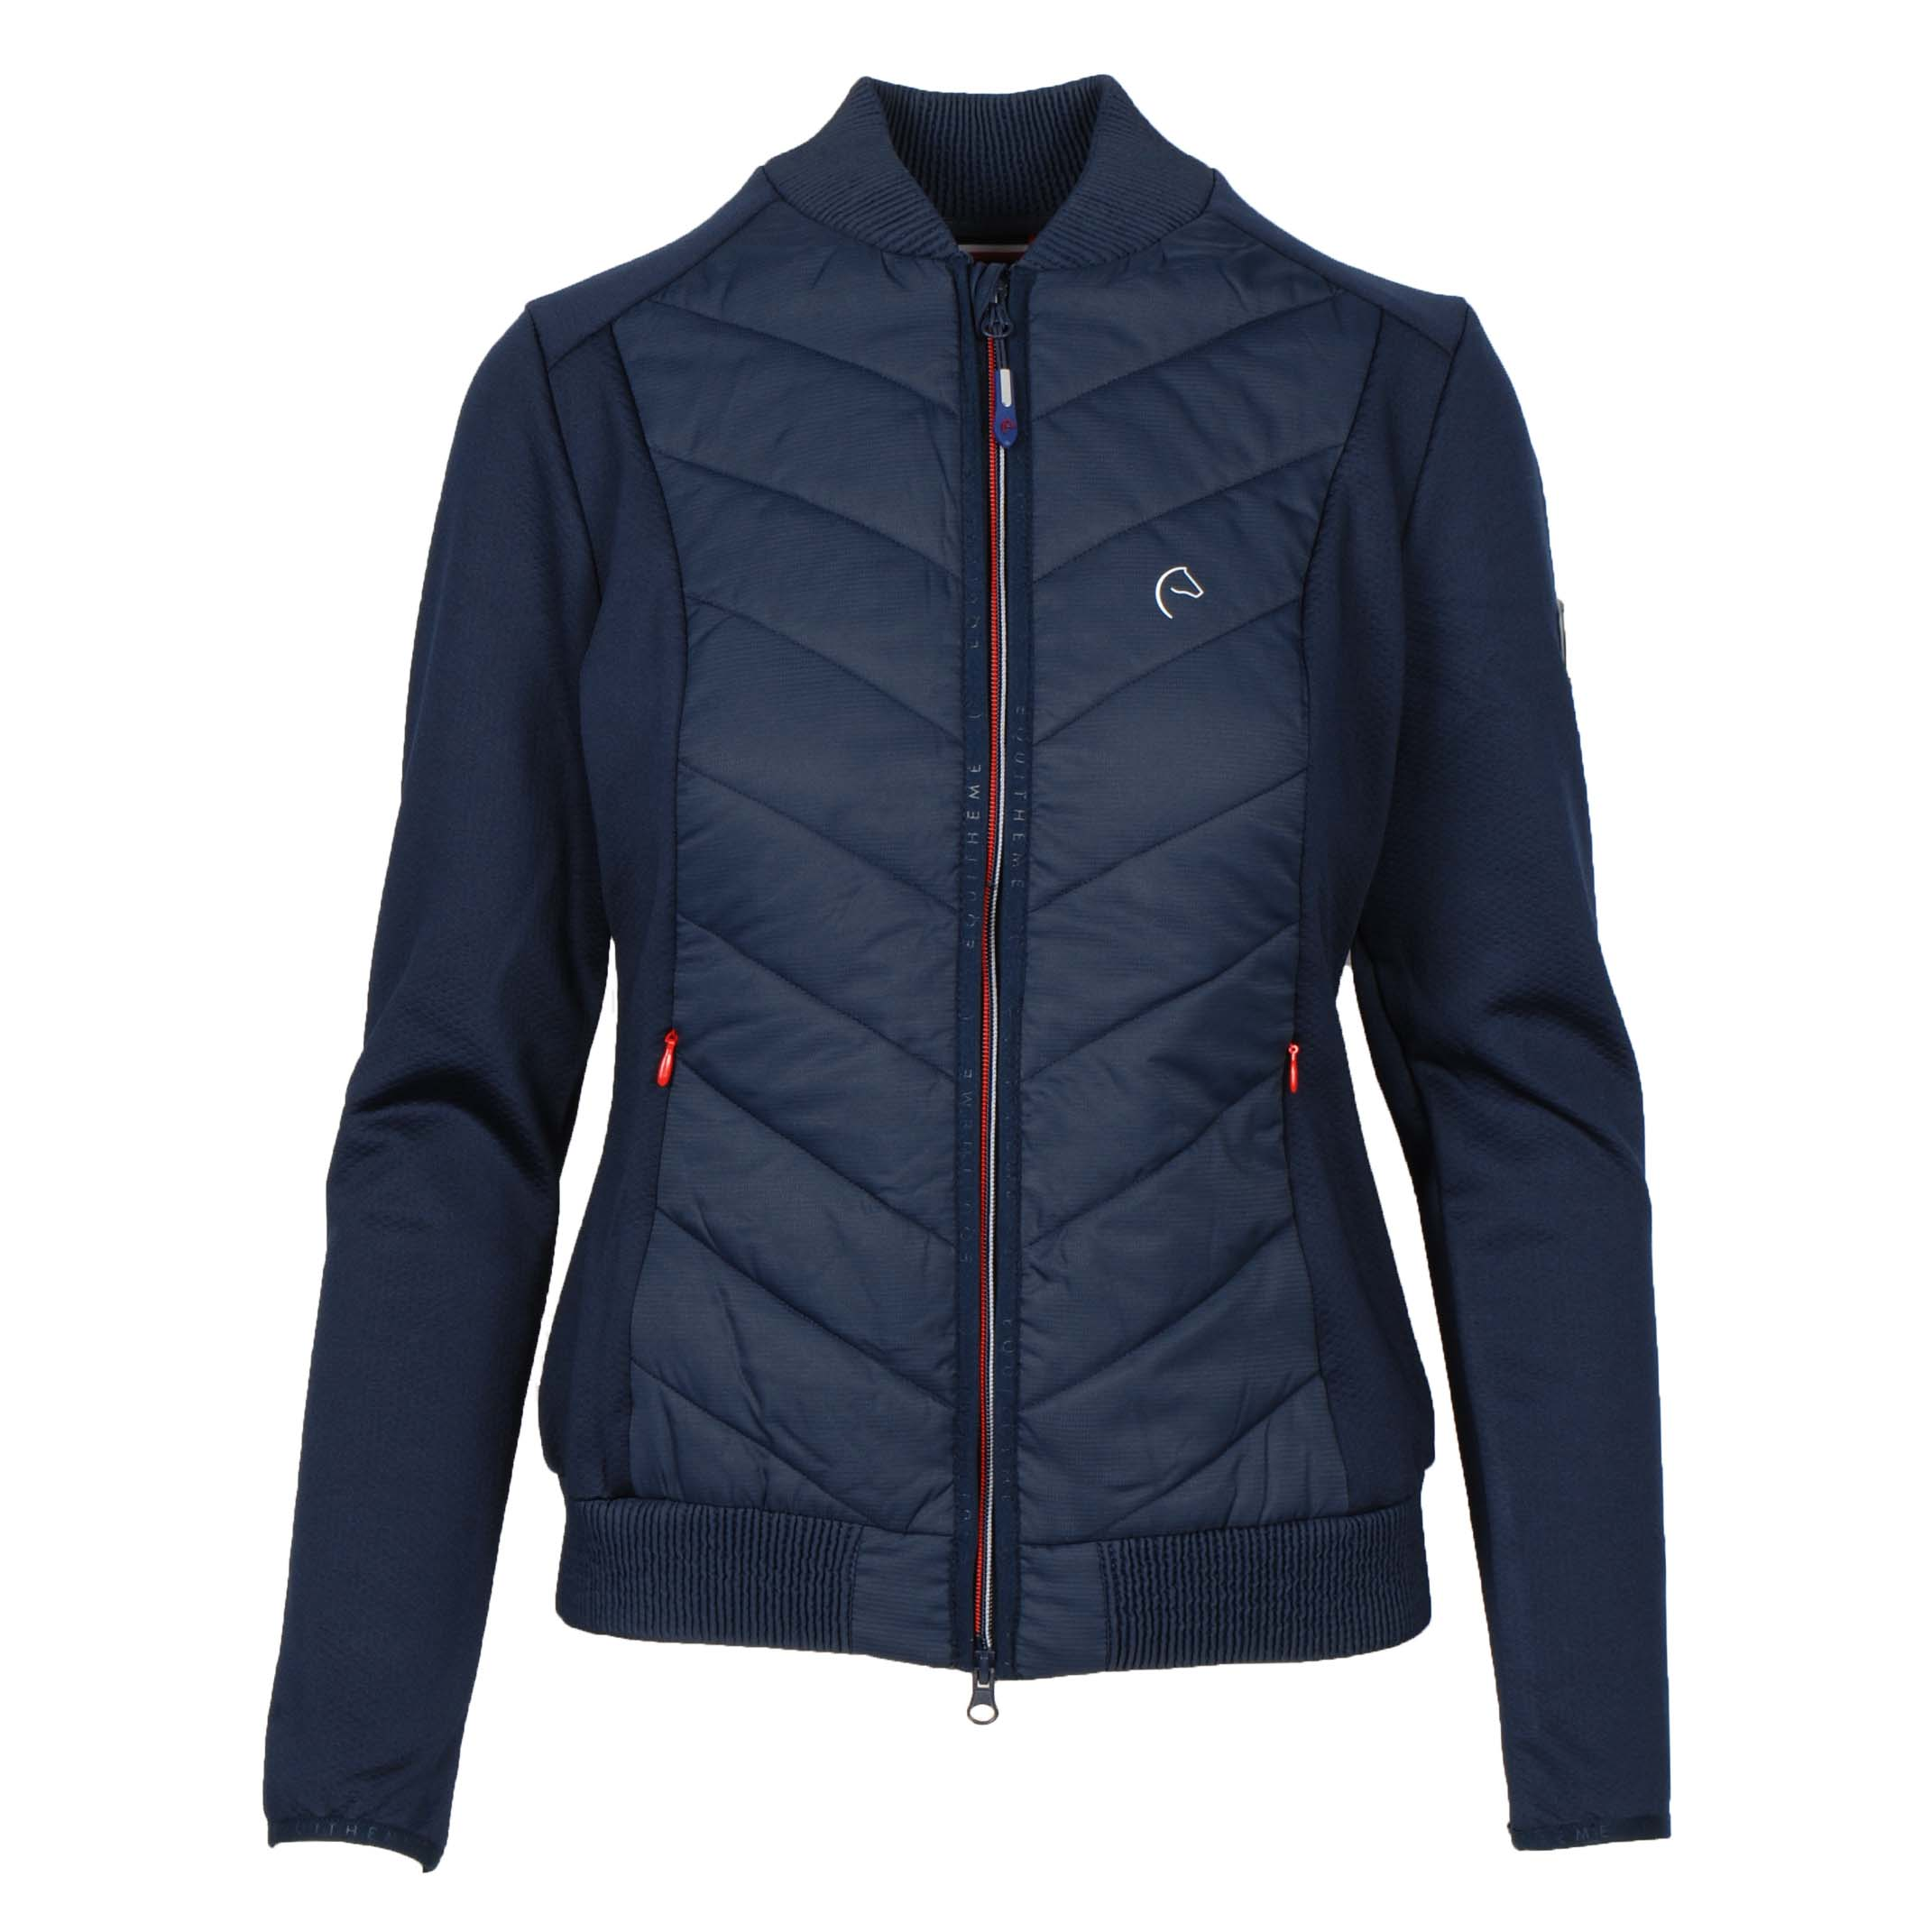 Equi Theme Aby techvest donkerblauw maat:m